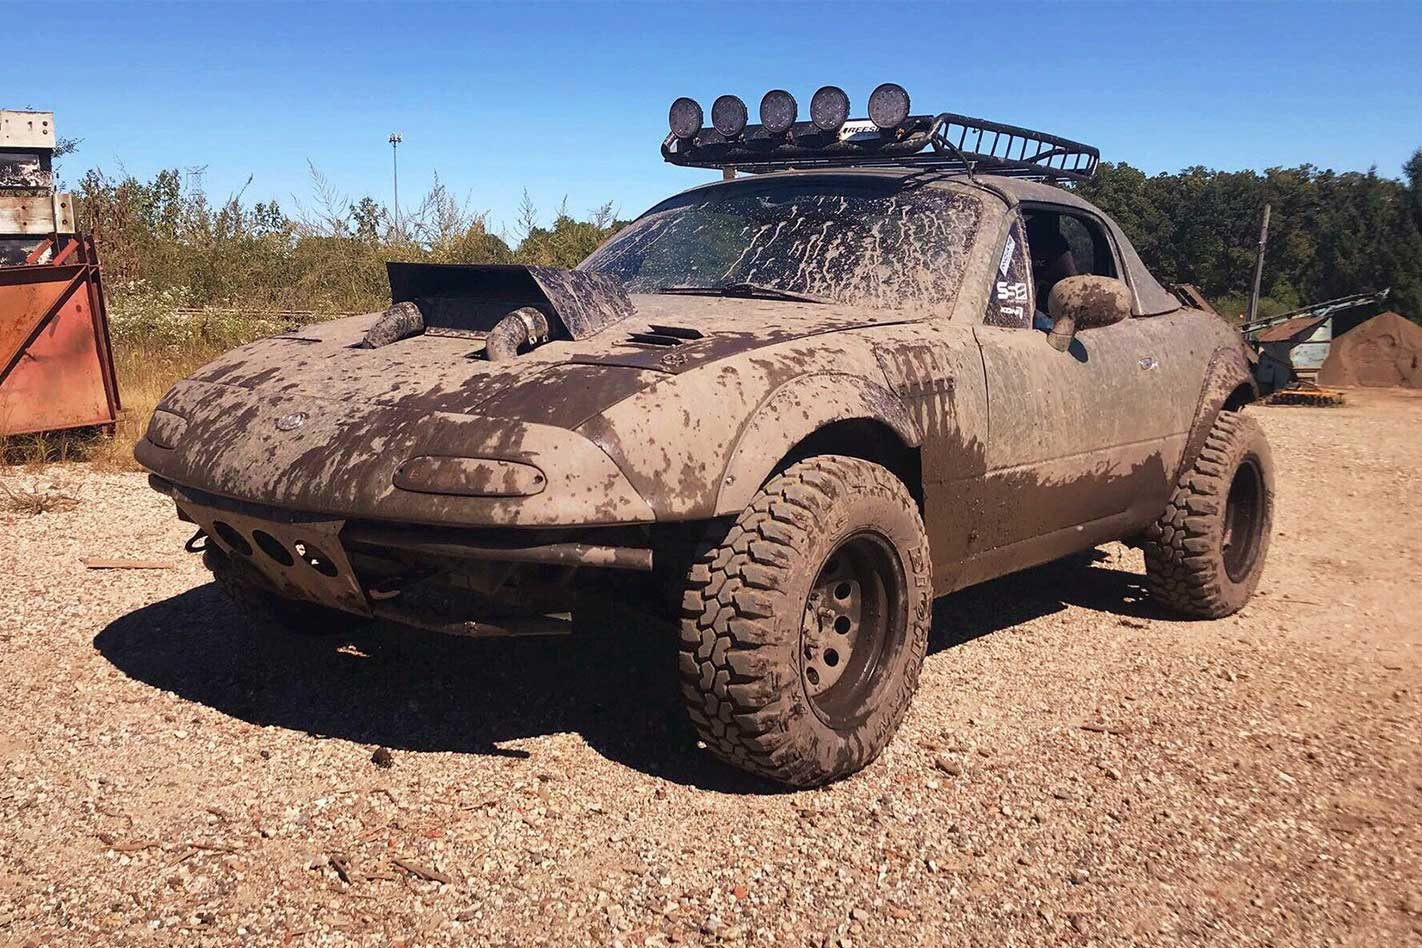 Mazda NA MX-5 lifted and supercharged for rally fun